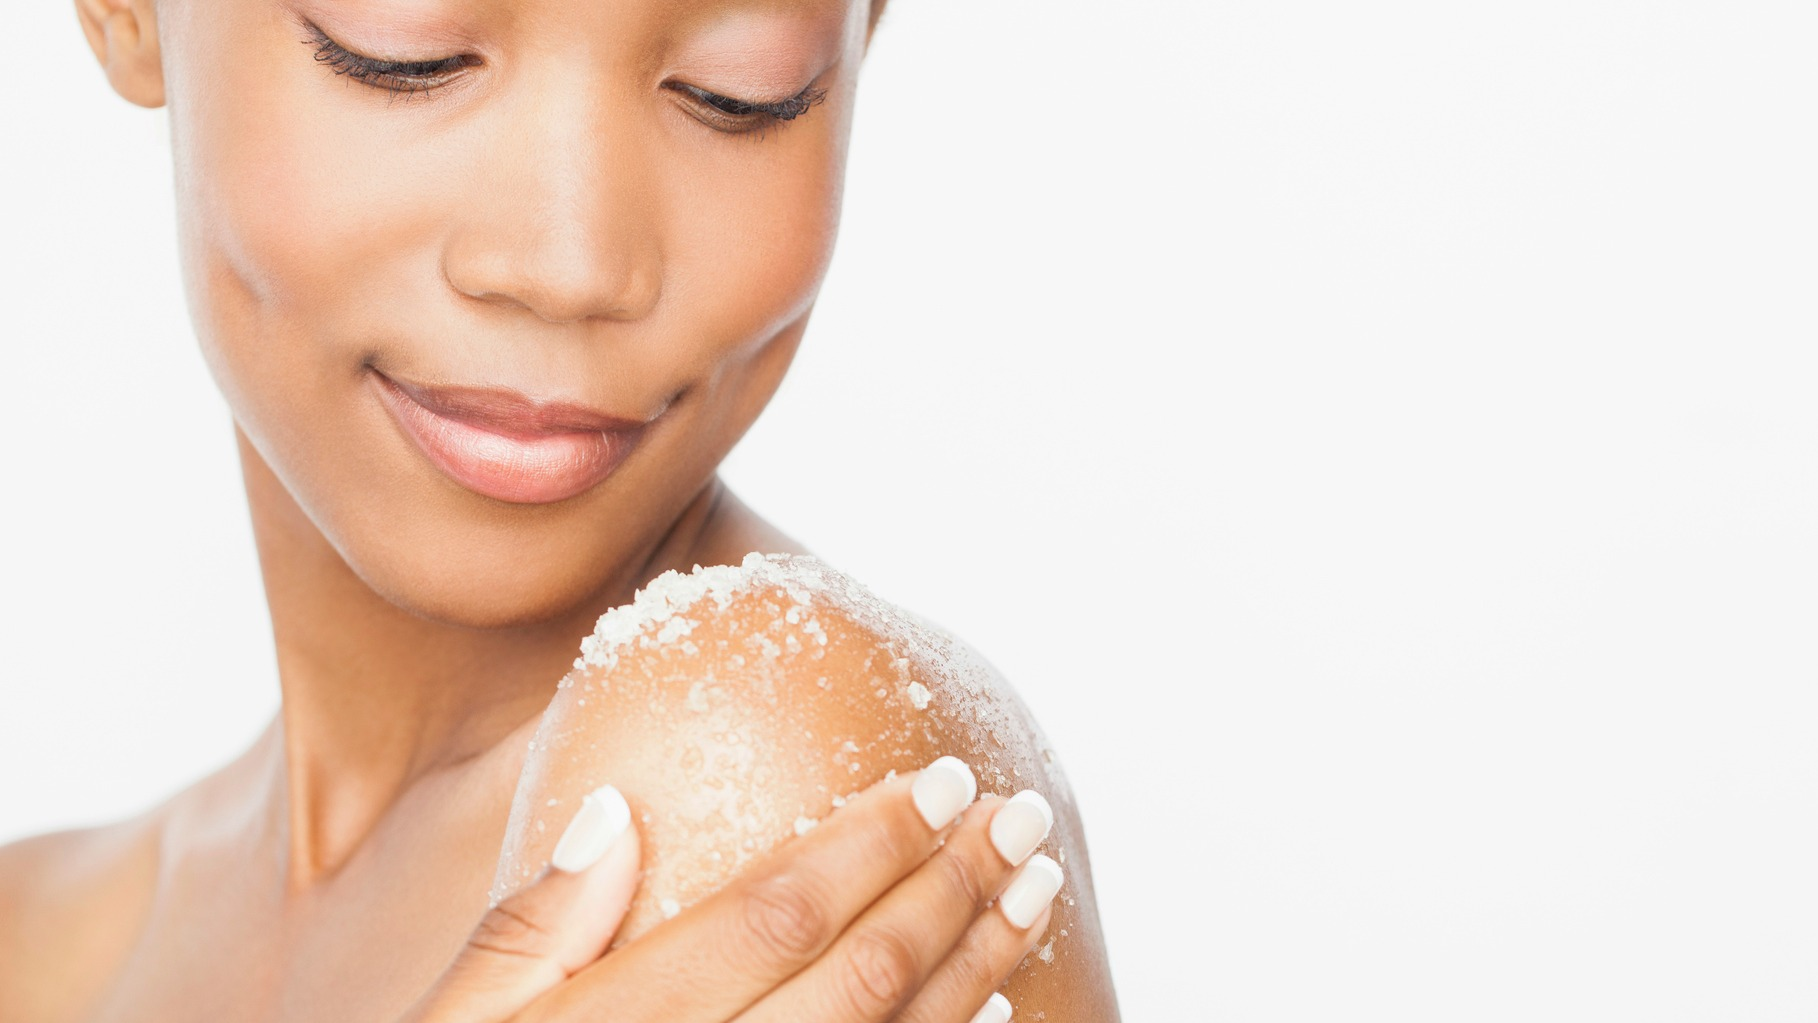 How To Apply Body Scrub